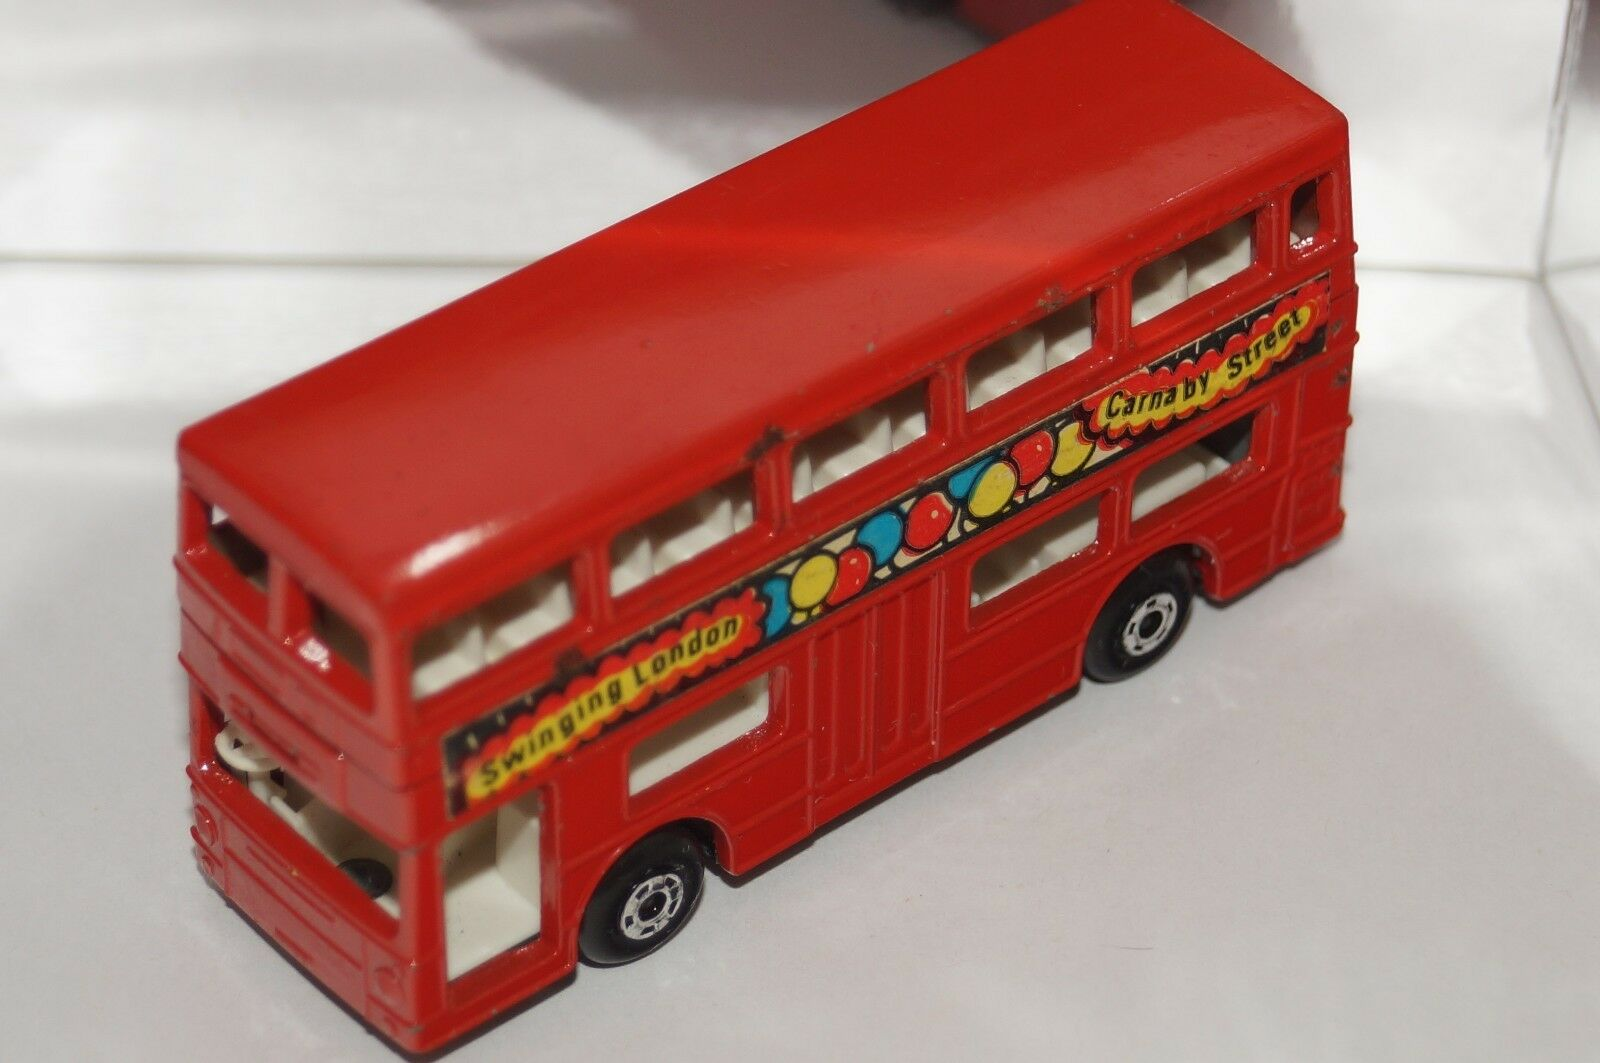 ORIGINAL Matchbox Superfast - The Londoner - No 17 - Red color - Swinging London